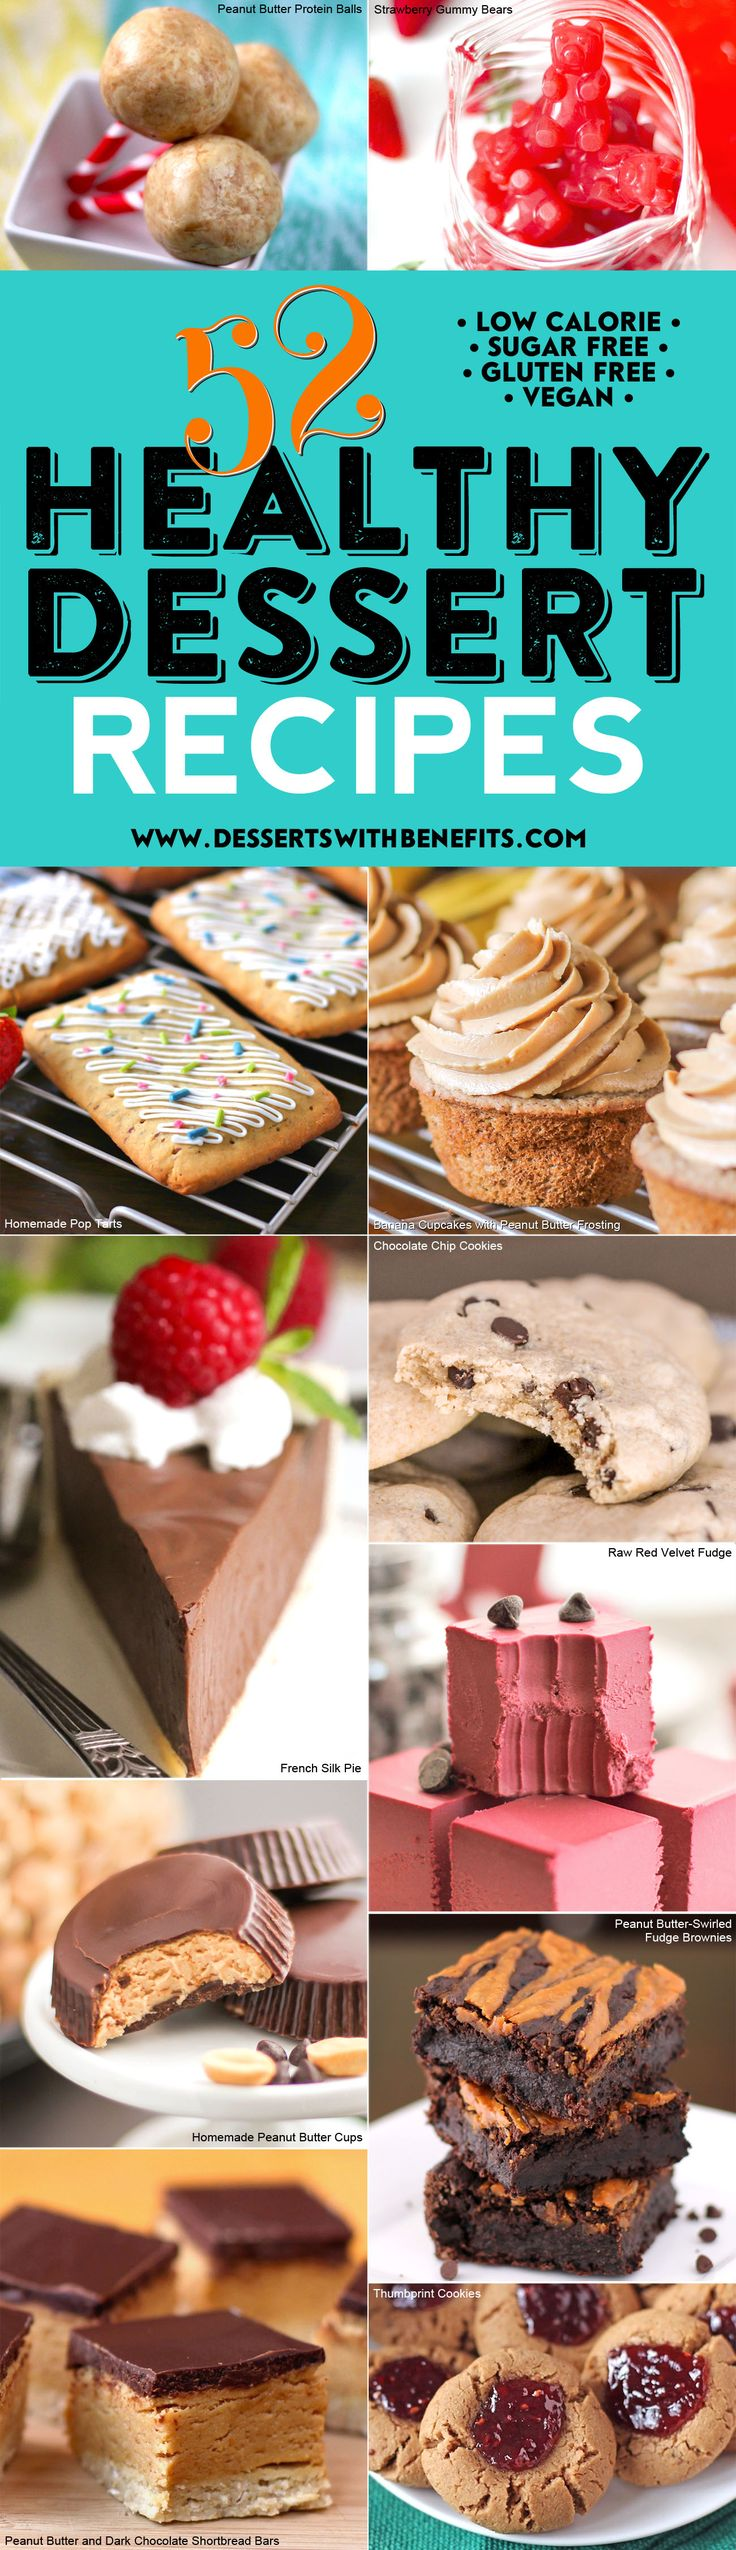 Your sweet tooth doesn't have to stand in the way of eating healthy! Trying to eat healthier for 2017 but don't want to deprive your sweet tooth? You'll enjoy this list of the BEST, MOST POPULAR, HEALTHIEST dessert recipes from the Desserts With Benefits Blog. We've got all natural, refined sugar free, low carb, low fat, high protein, high fiber, gluten free, dairy free, and vegan recipes to keep you healthy, happy, and sane (not hangry) all year long!